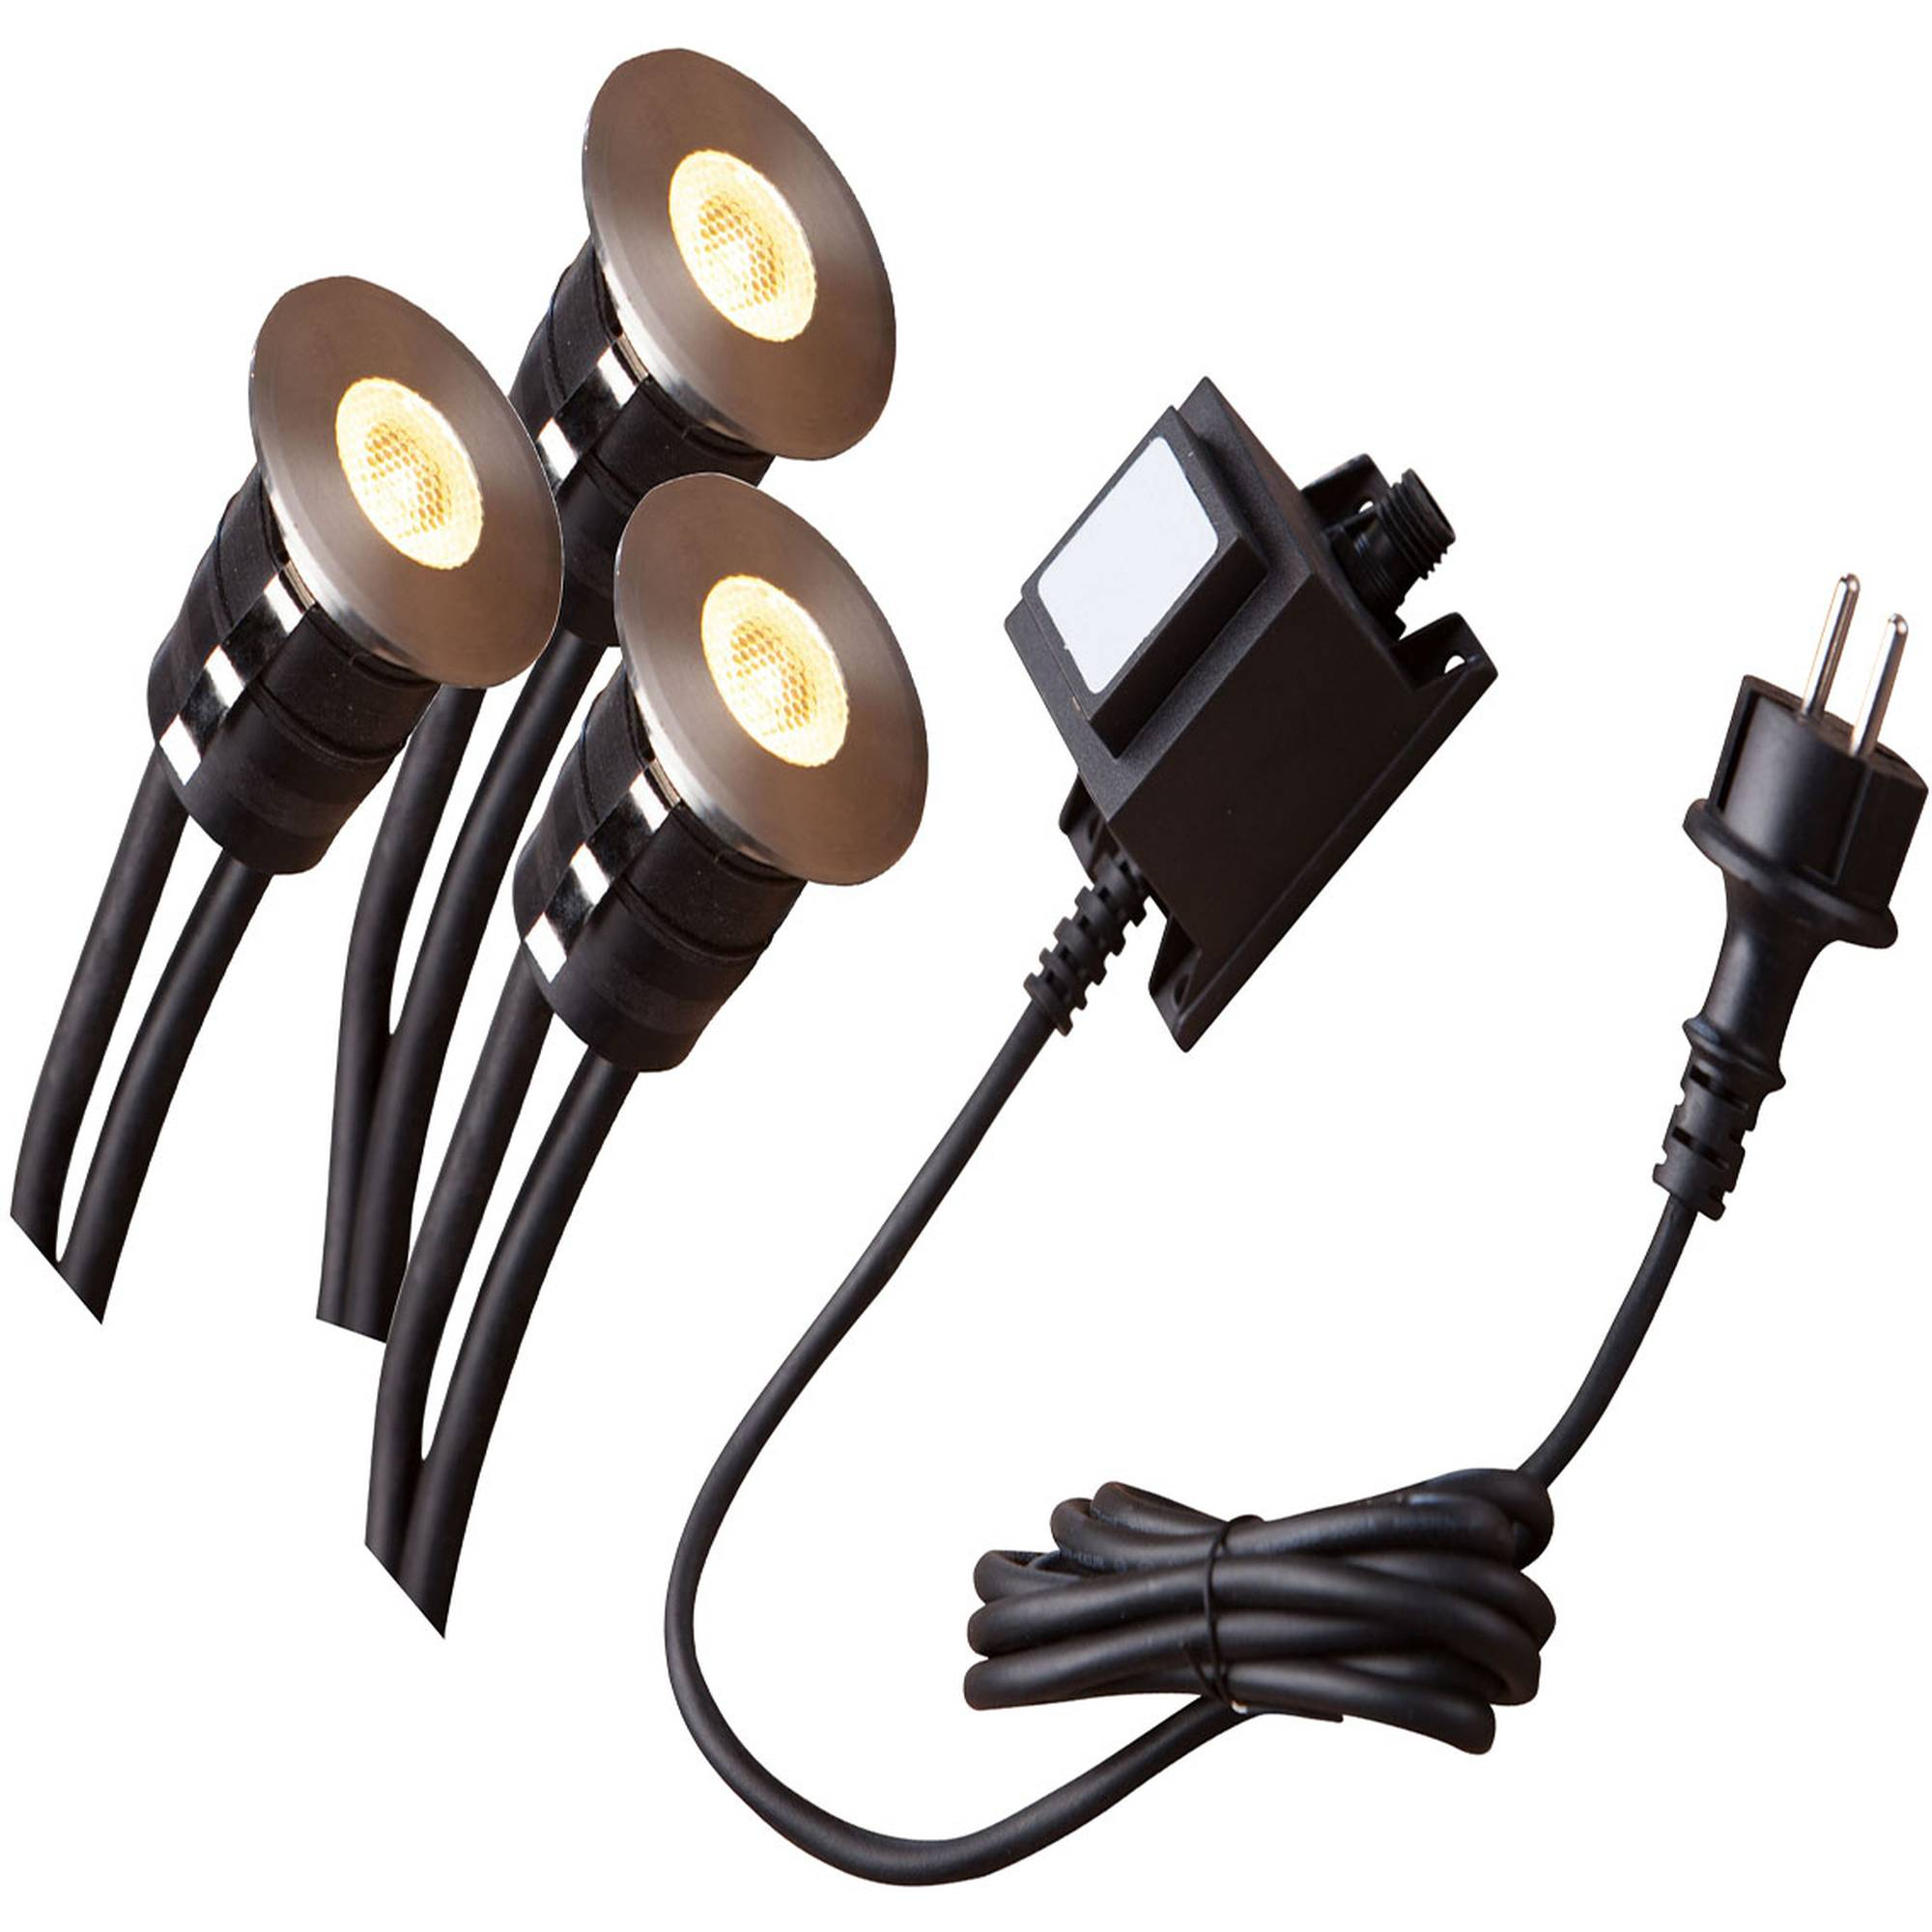 Heissner L450-00 LED Smart Light Bodeneinbau Spot Starter-Set Decklights